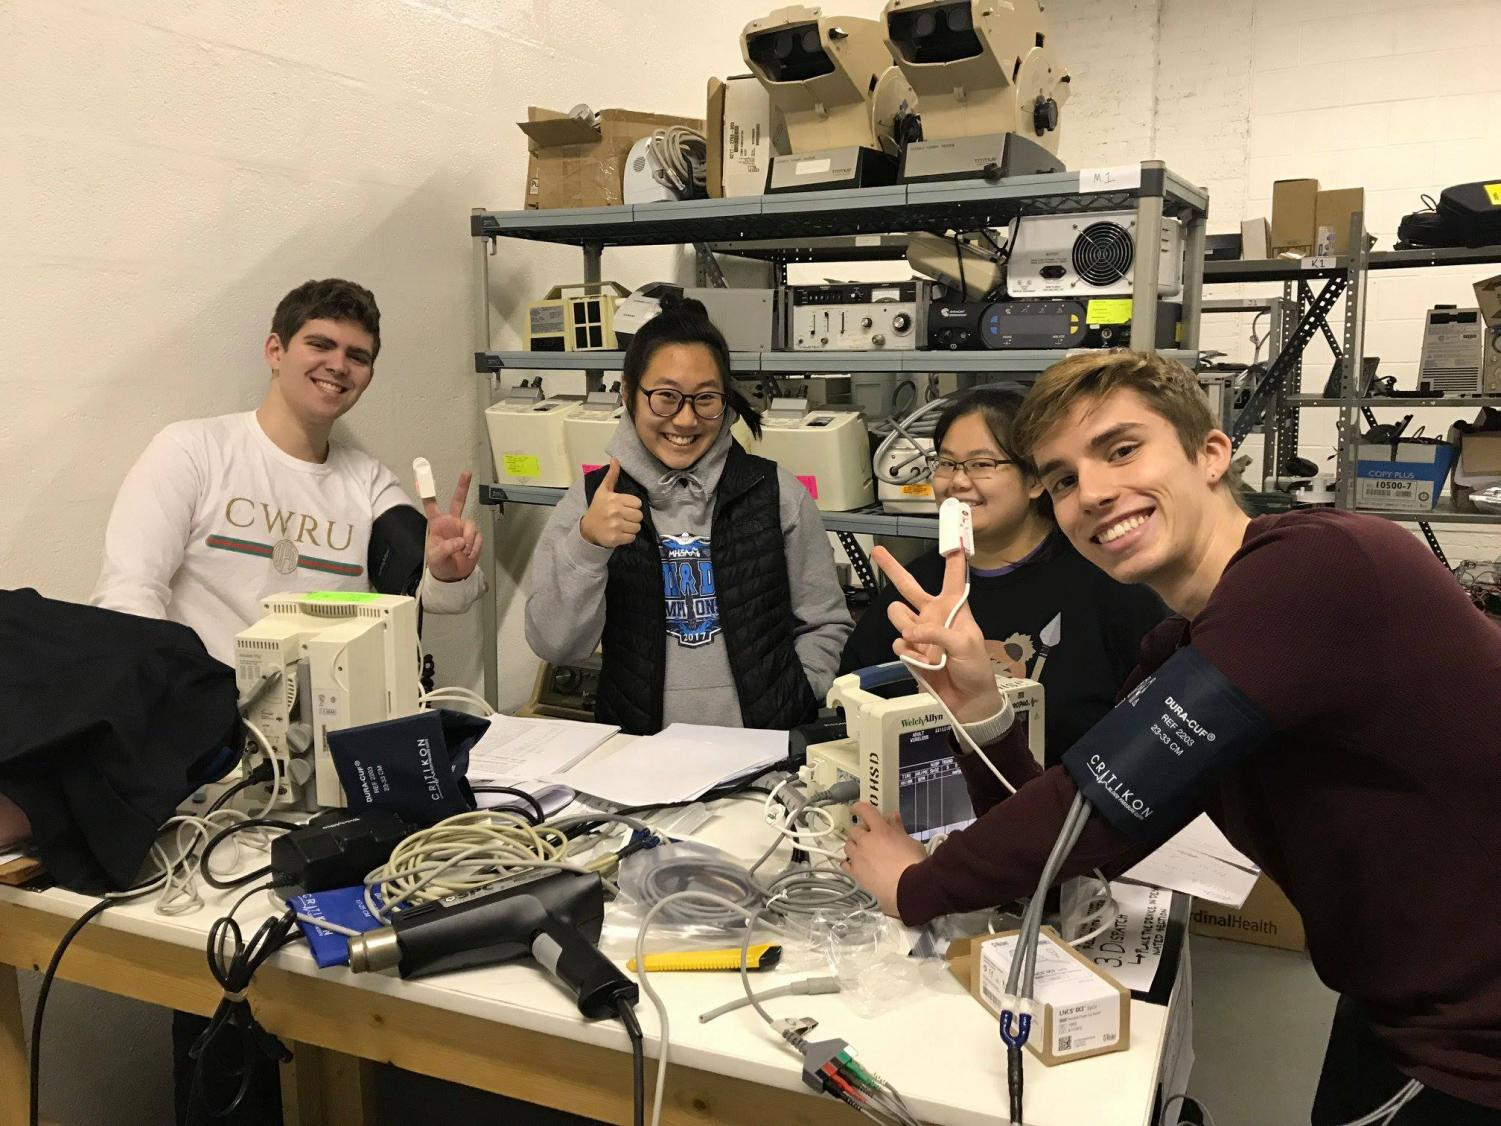 CWRU Medwish volunteers repaired over $170,000 worth of medical equipment for underprivileged hospitals.